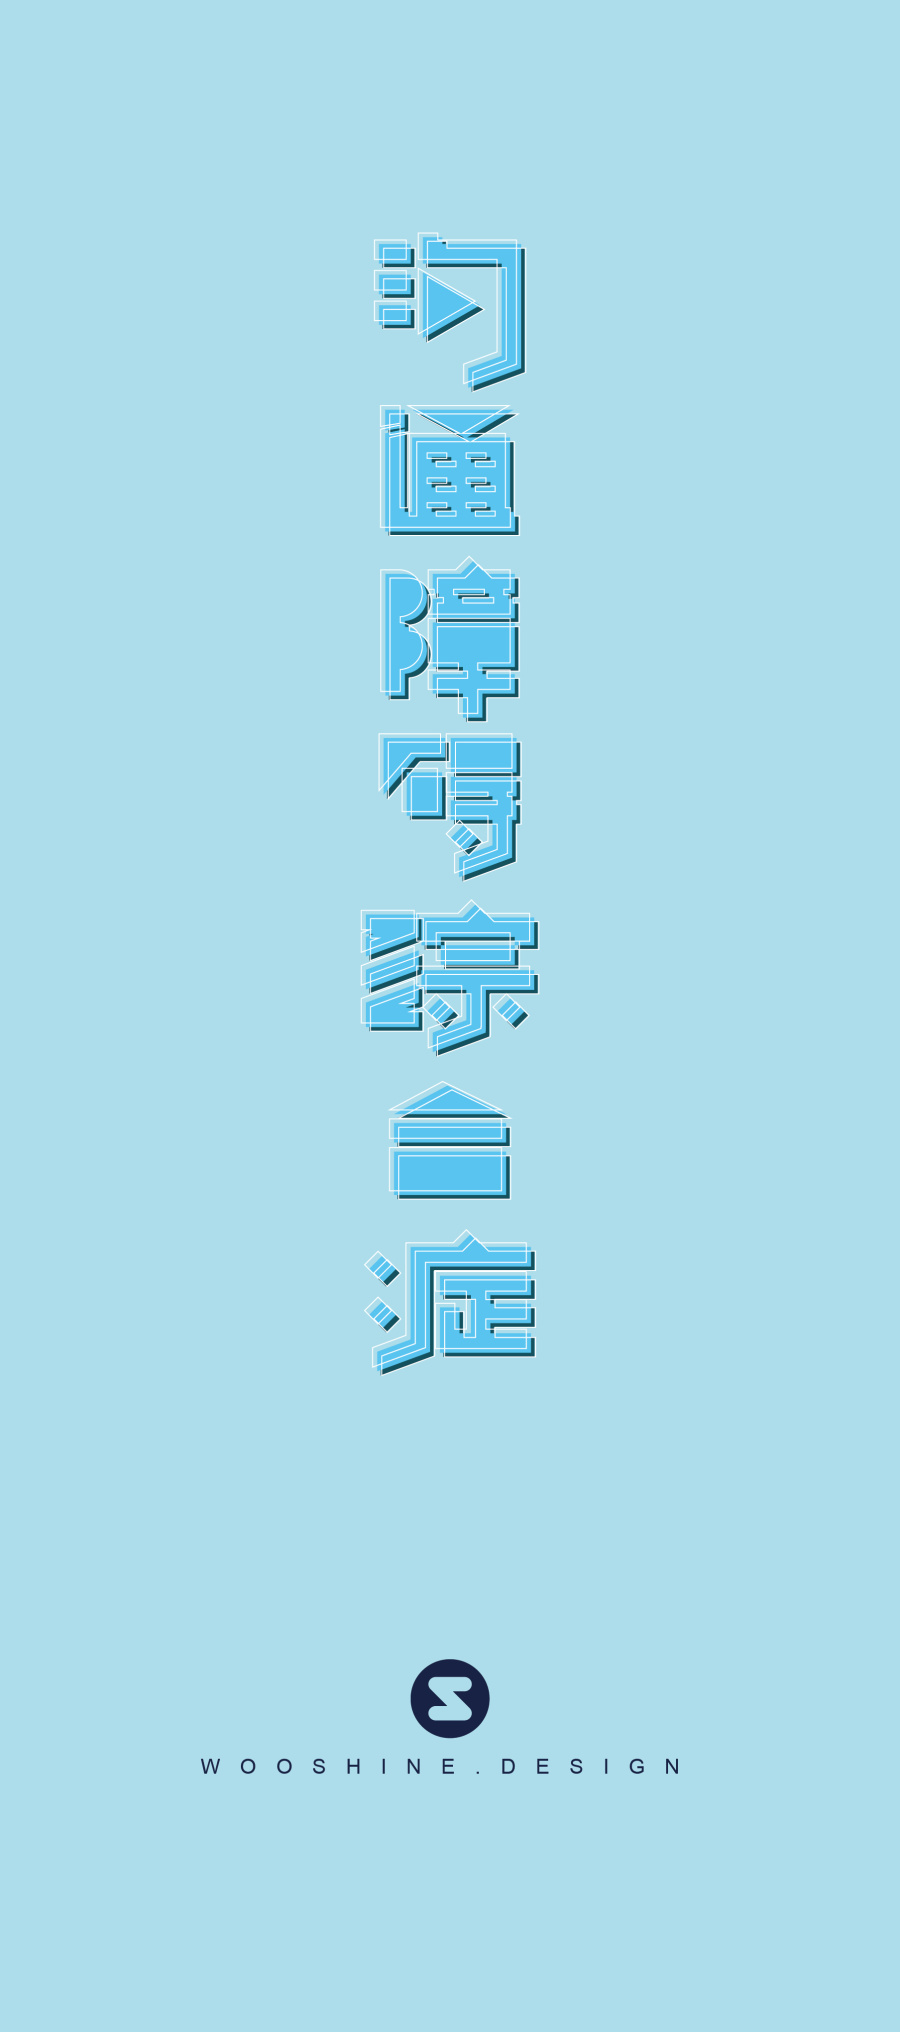 chinesefontdesign.com 2016 07 17 20 25 44 100+ Examples Of Creative Chinese Font Style Ddesign Ideas You Should See